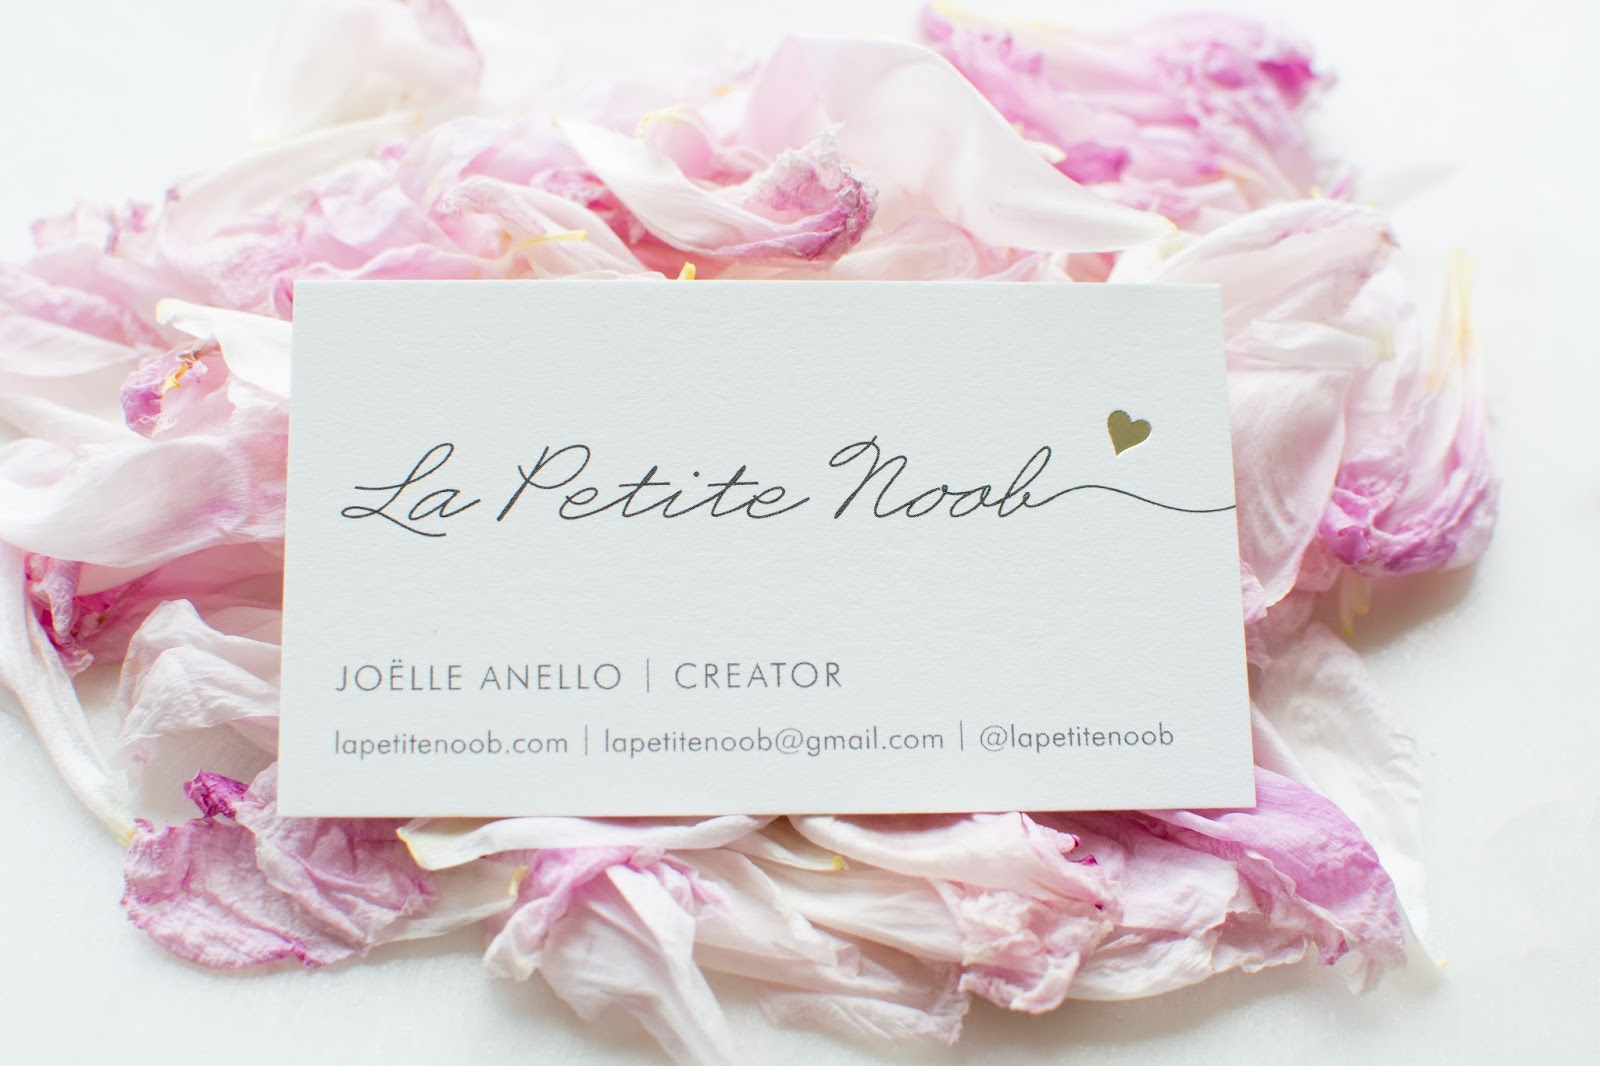 Fashion blogger business cards oxynux blog tips my blogging business cards from minted la pee noob colourmoves